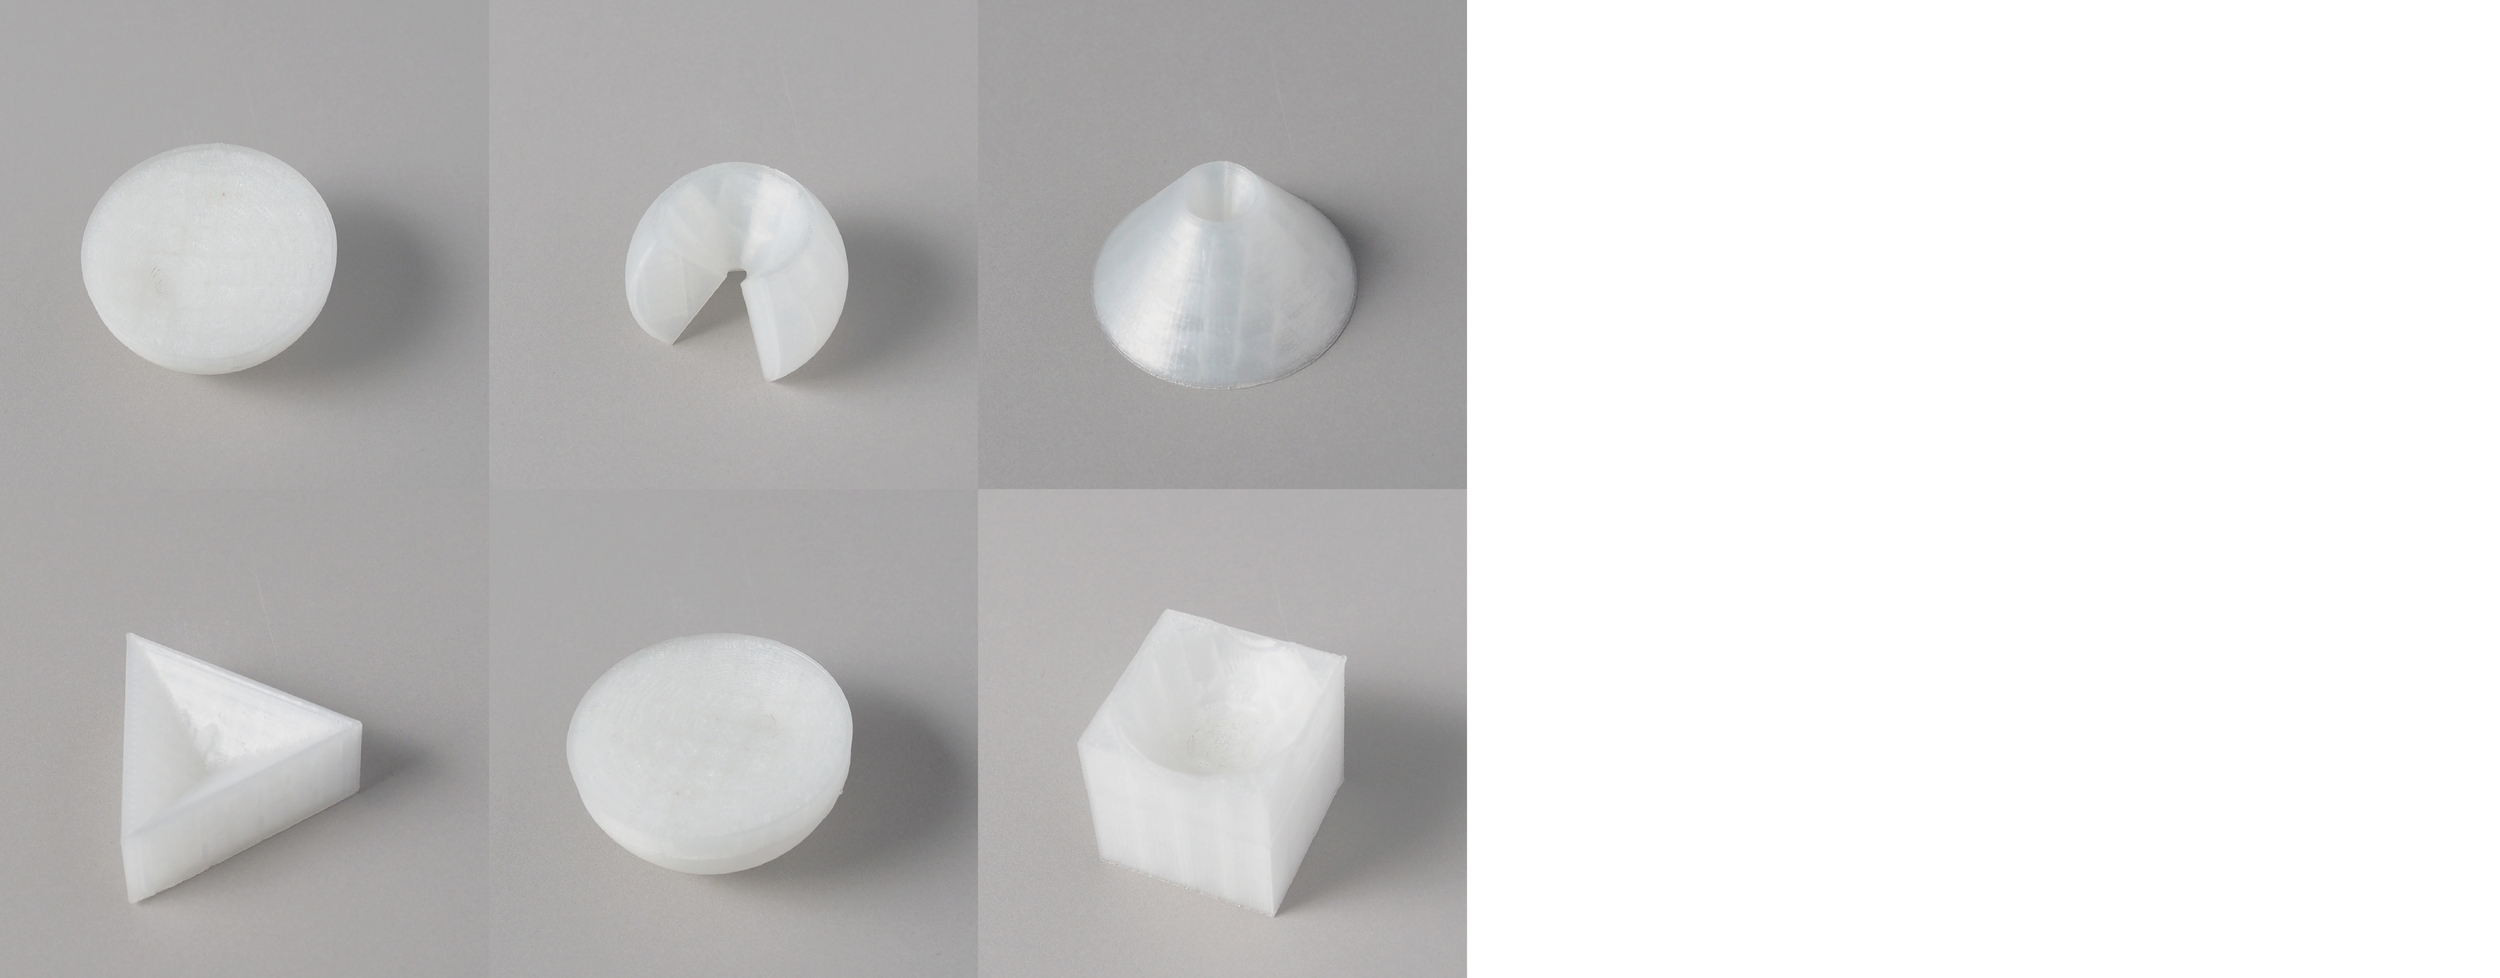 """Form study: Indent  Series   Size: 4"""" x 4""""   Material: PLA"""